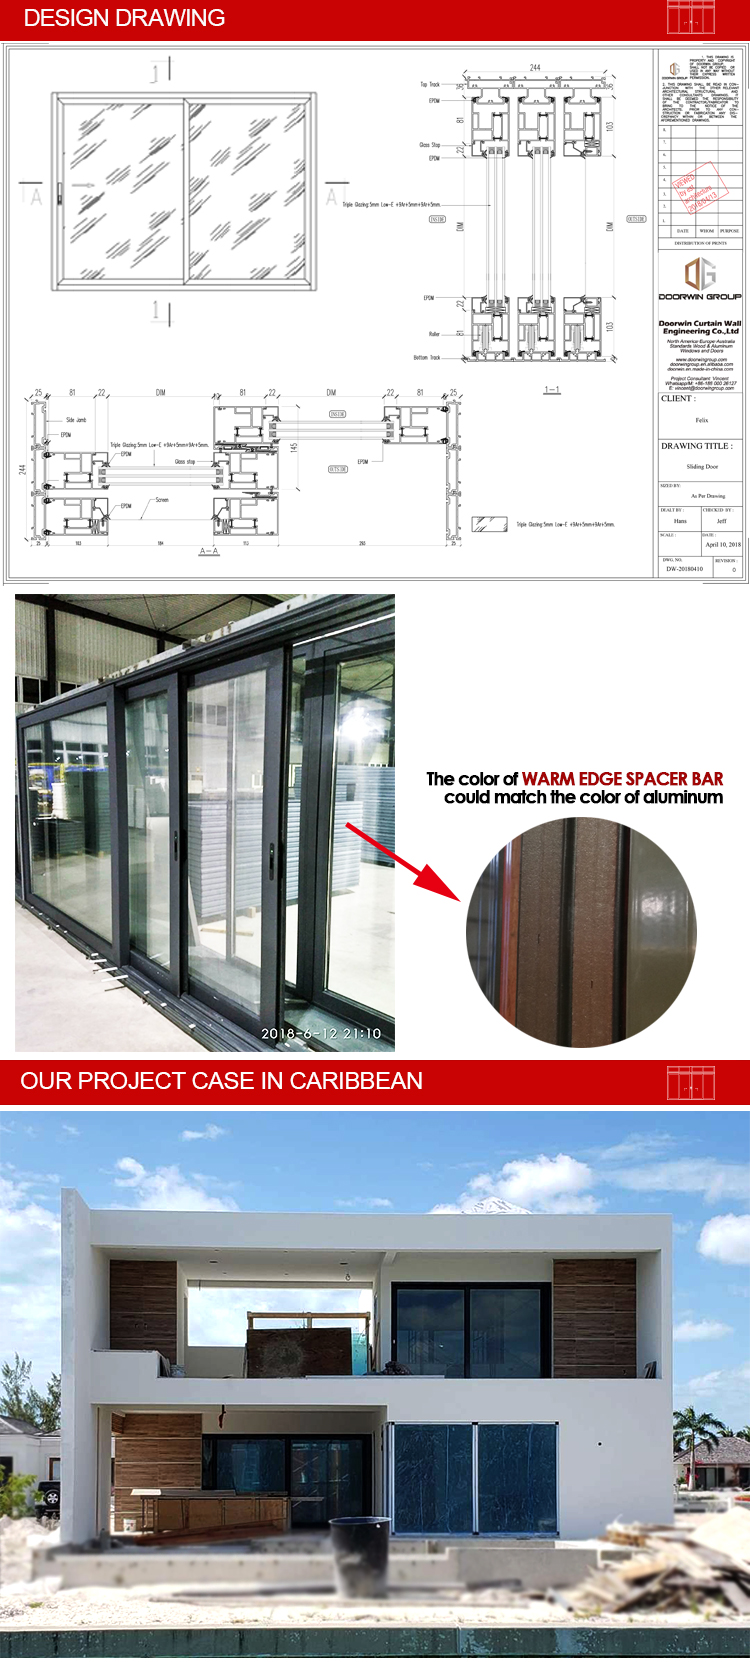 Doorwin 2020 Hot Sale American standard Hurricane Proof Impact Commercial Grade Thermal Break Aluminum Sliding Glass Doors